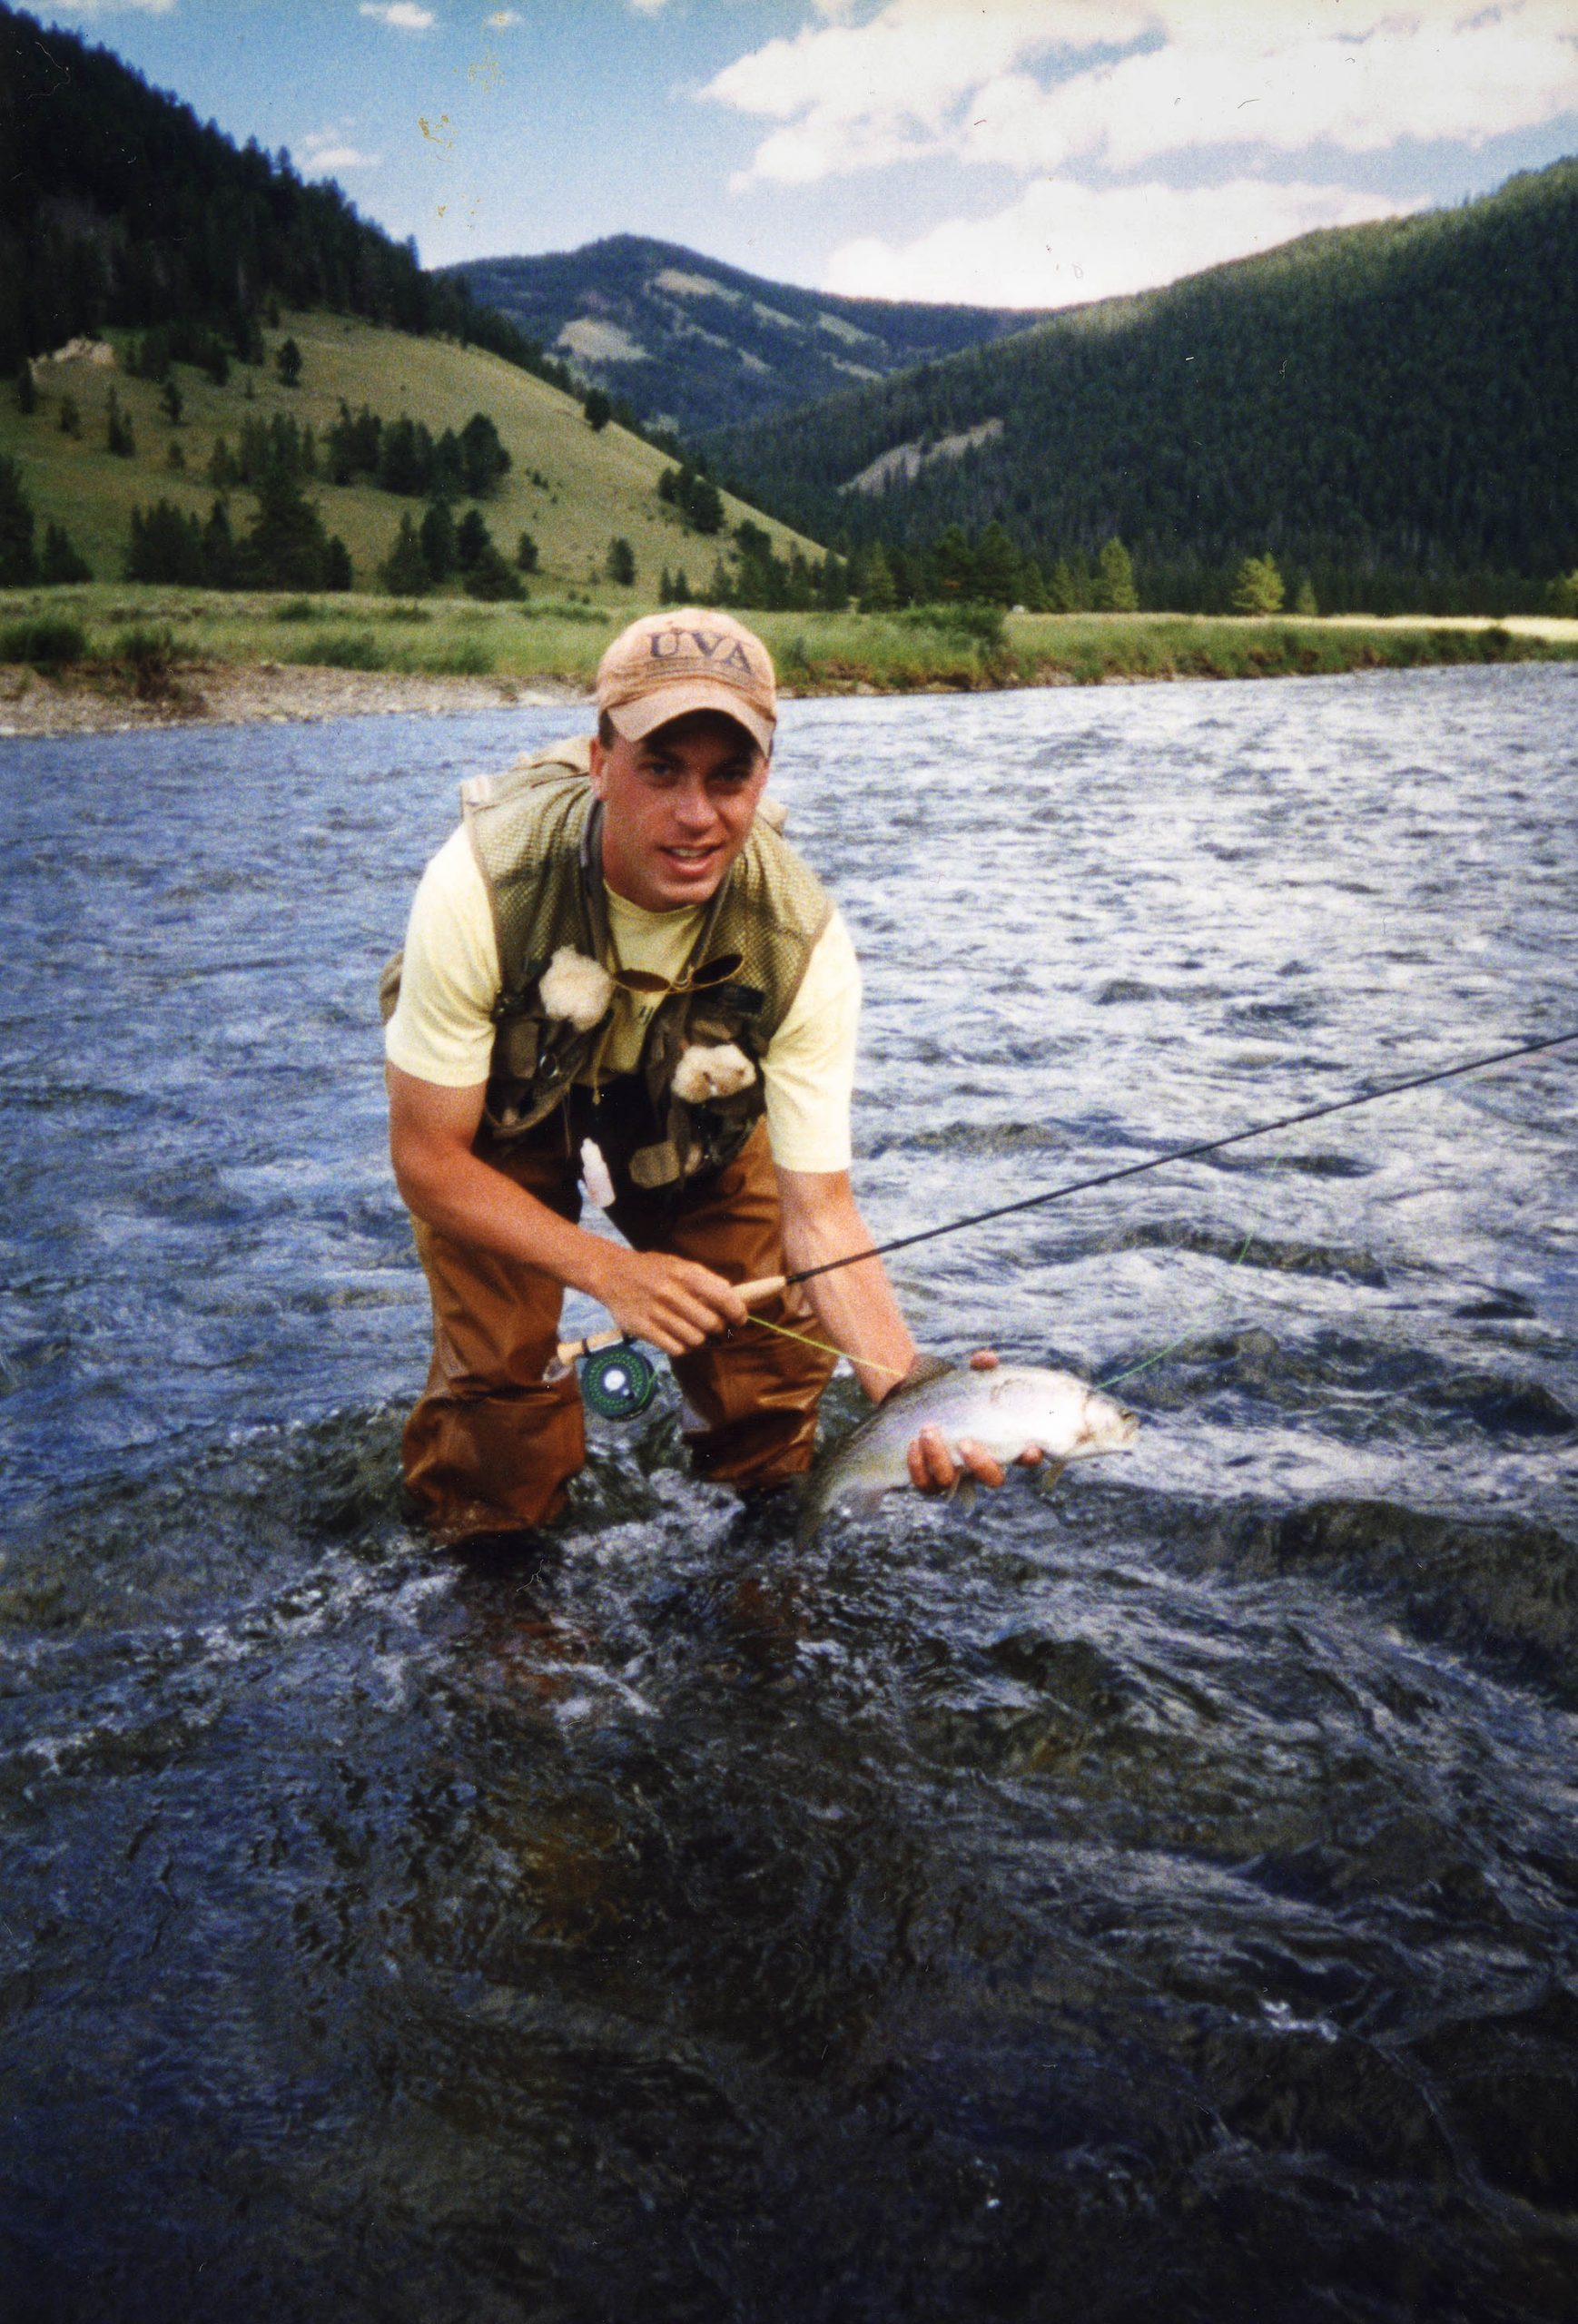 Fly fishing for wild rainbow trout in Montana | Photo by John Muhler